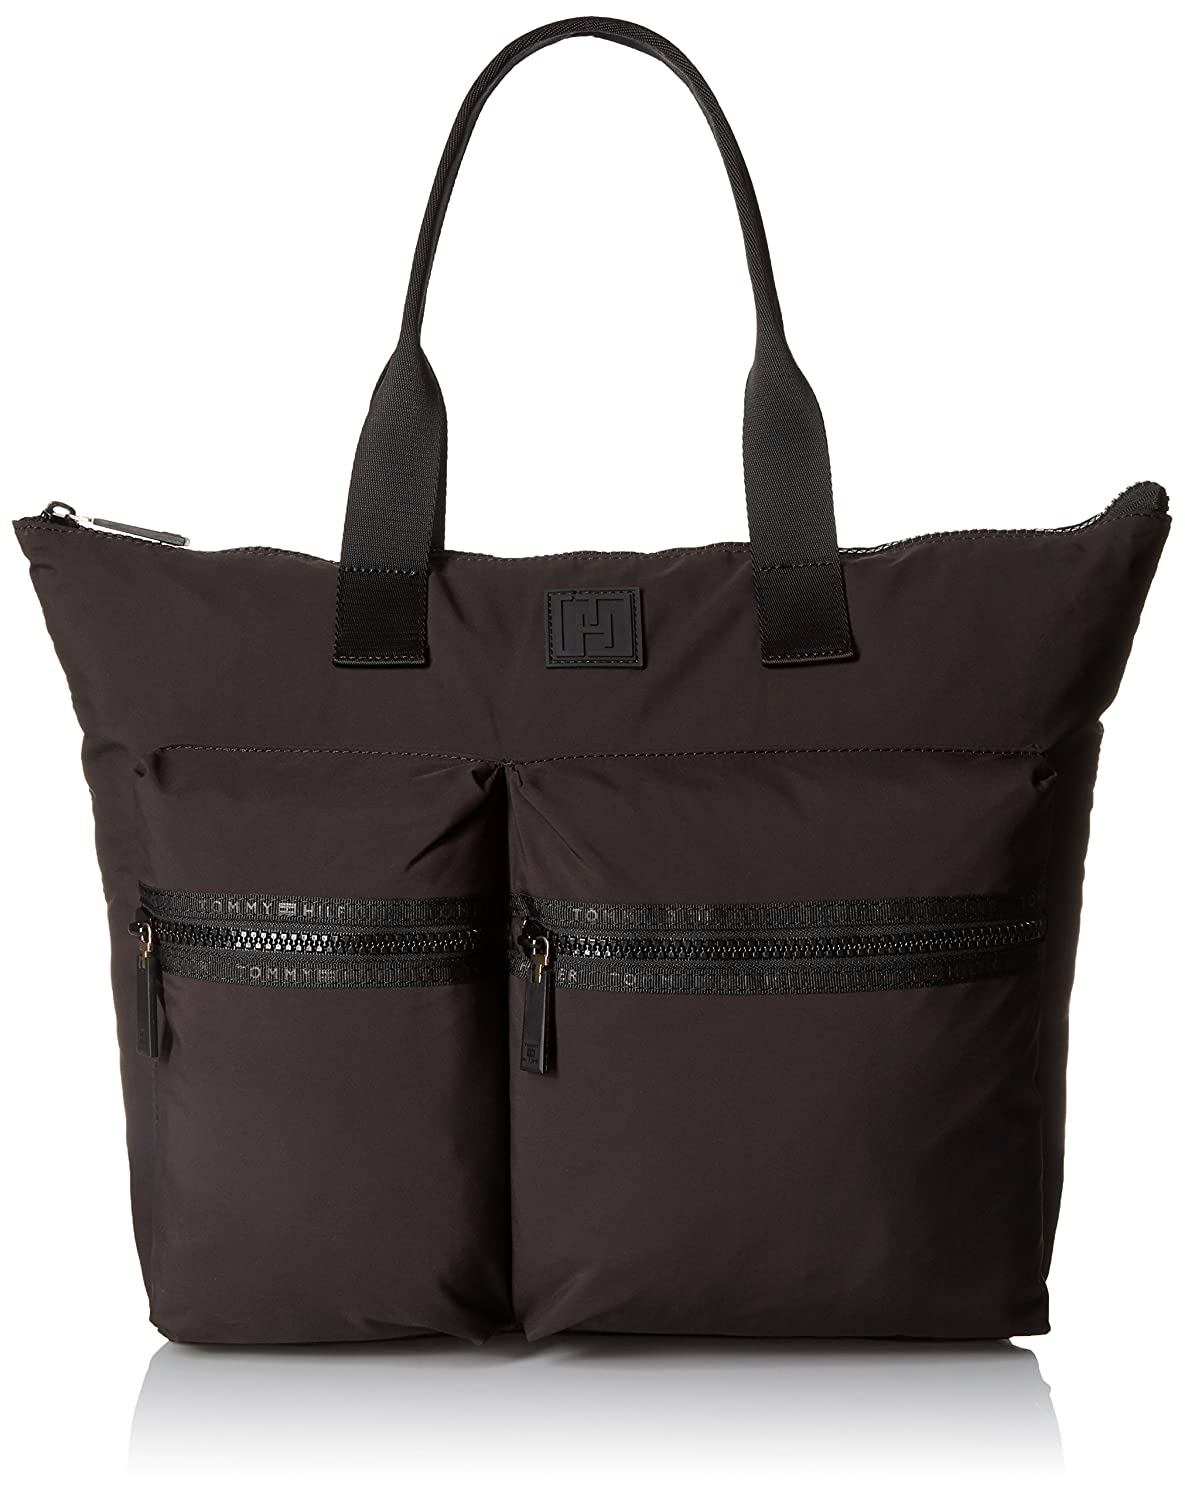 afaf3f7ee Amazon.com: Tommy Hilfiger Sport Nylon Large Tote Top Handle Bag, Black,  One Size: Clothing